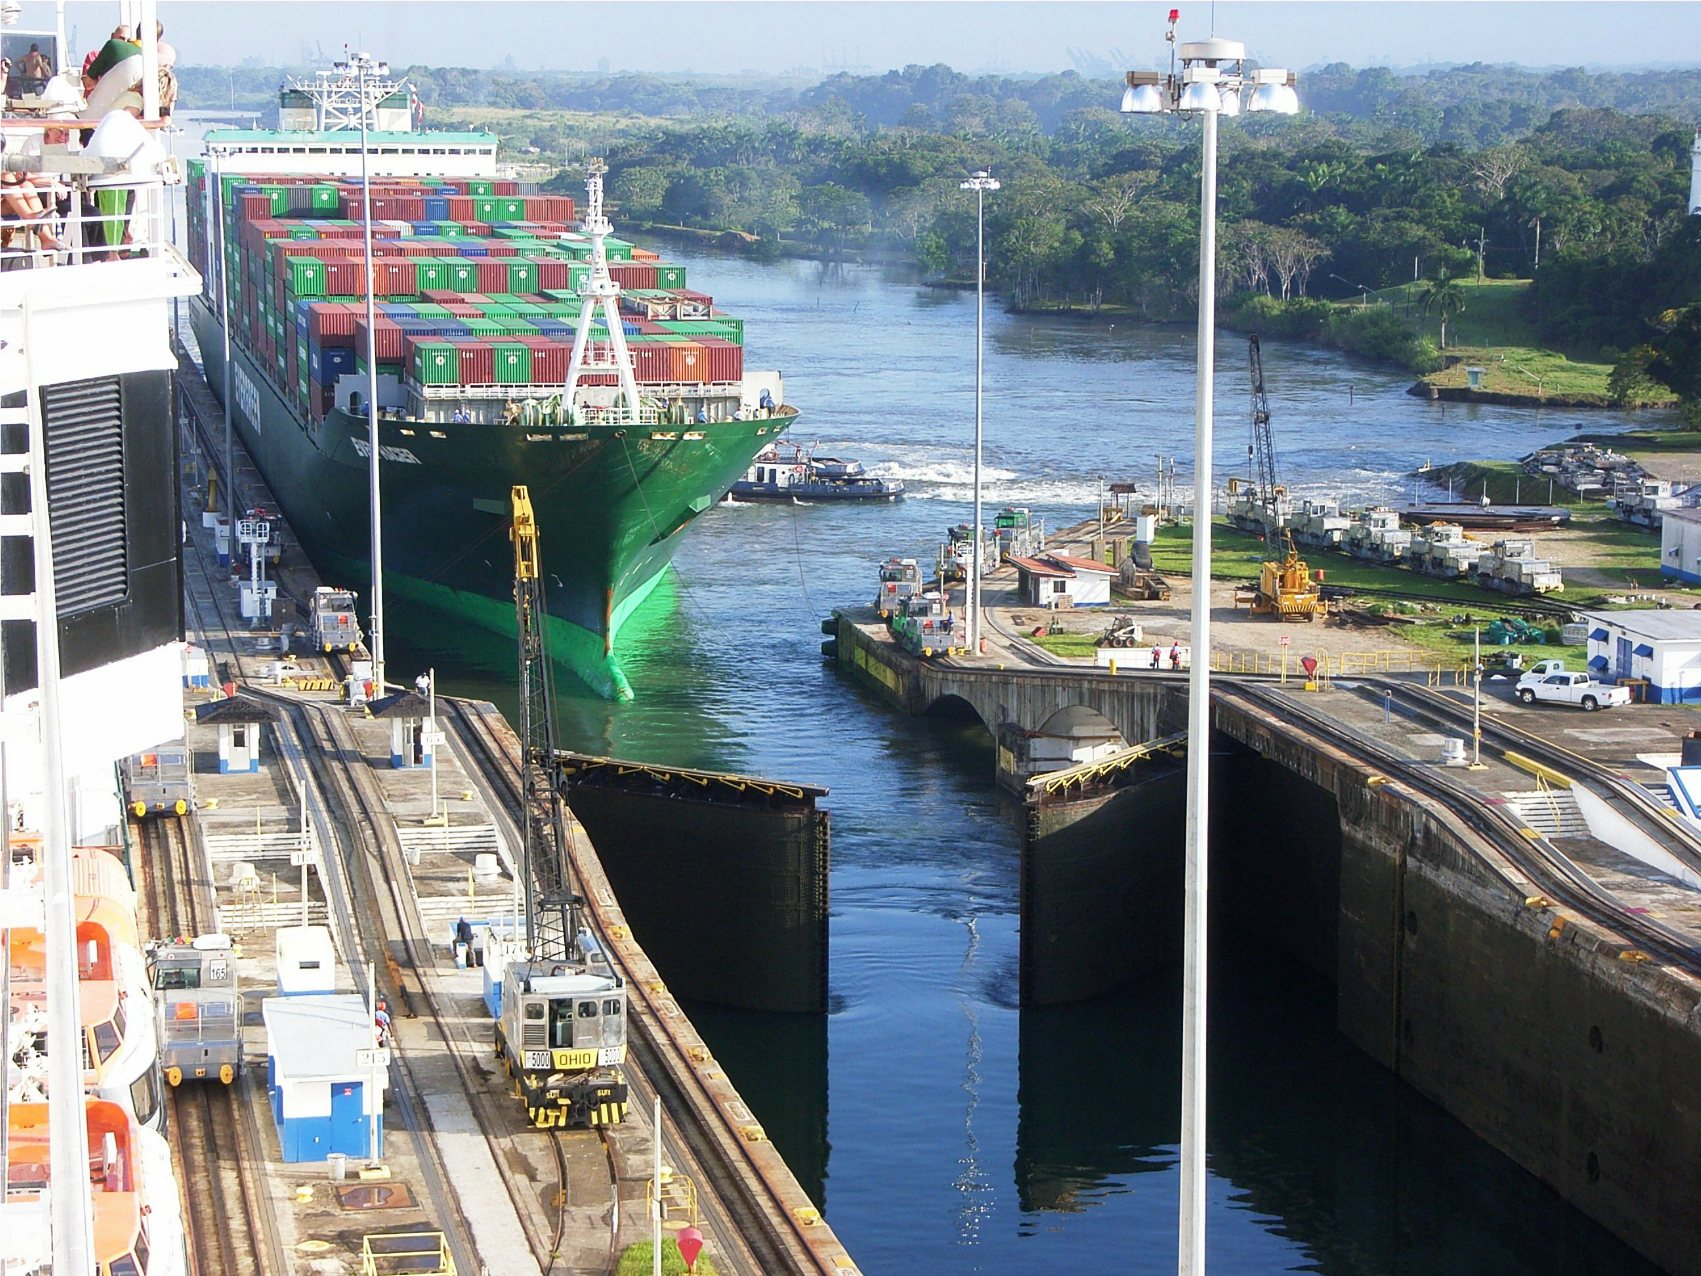 Canal De Panama: Famous Historic Buildings & Archaeological Sites In Panama